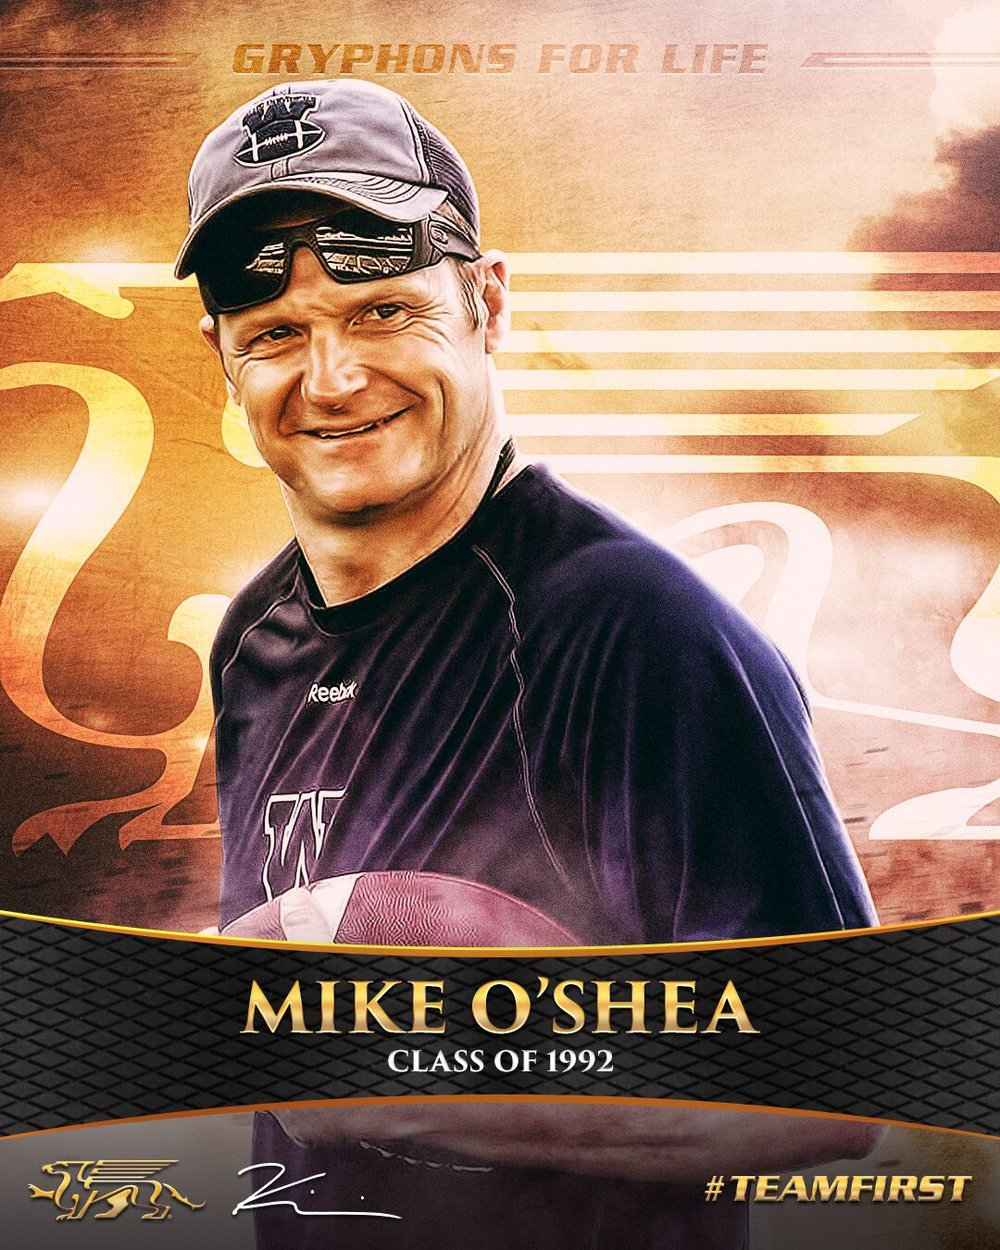 gfl series 1 mike oshea.JPG